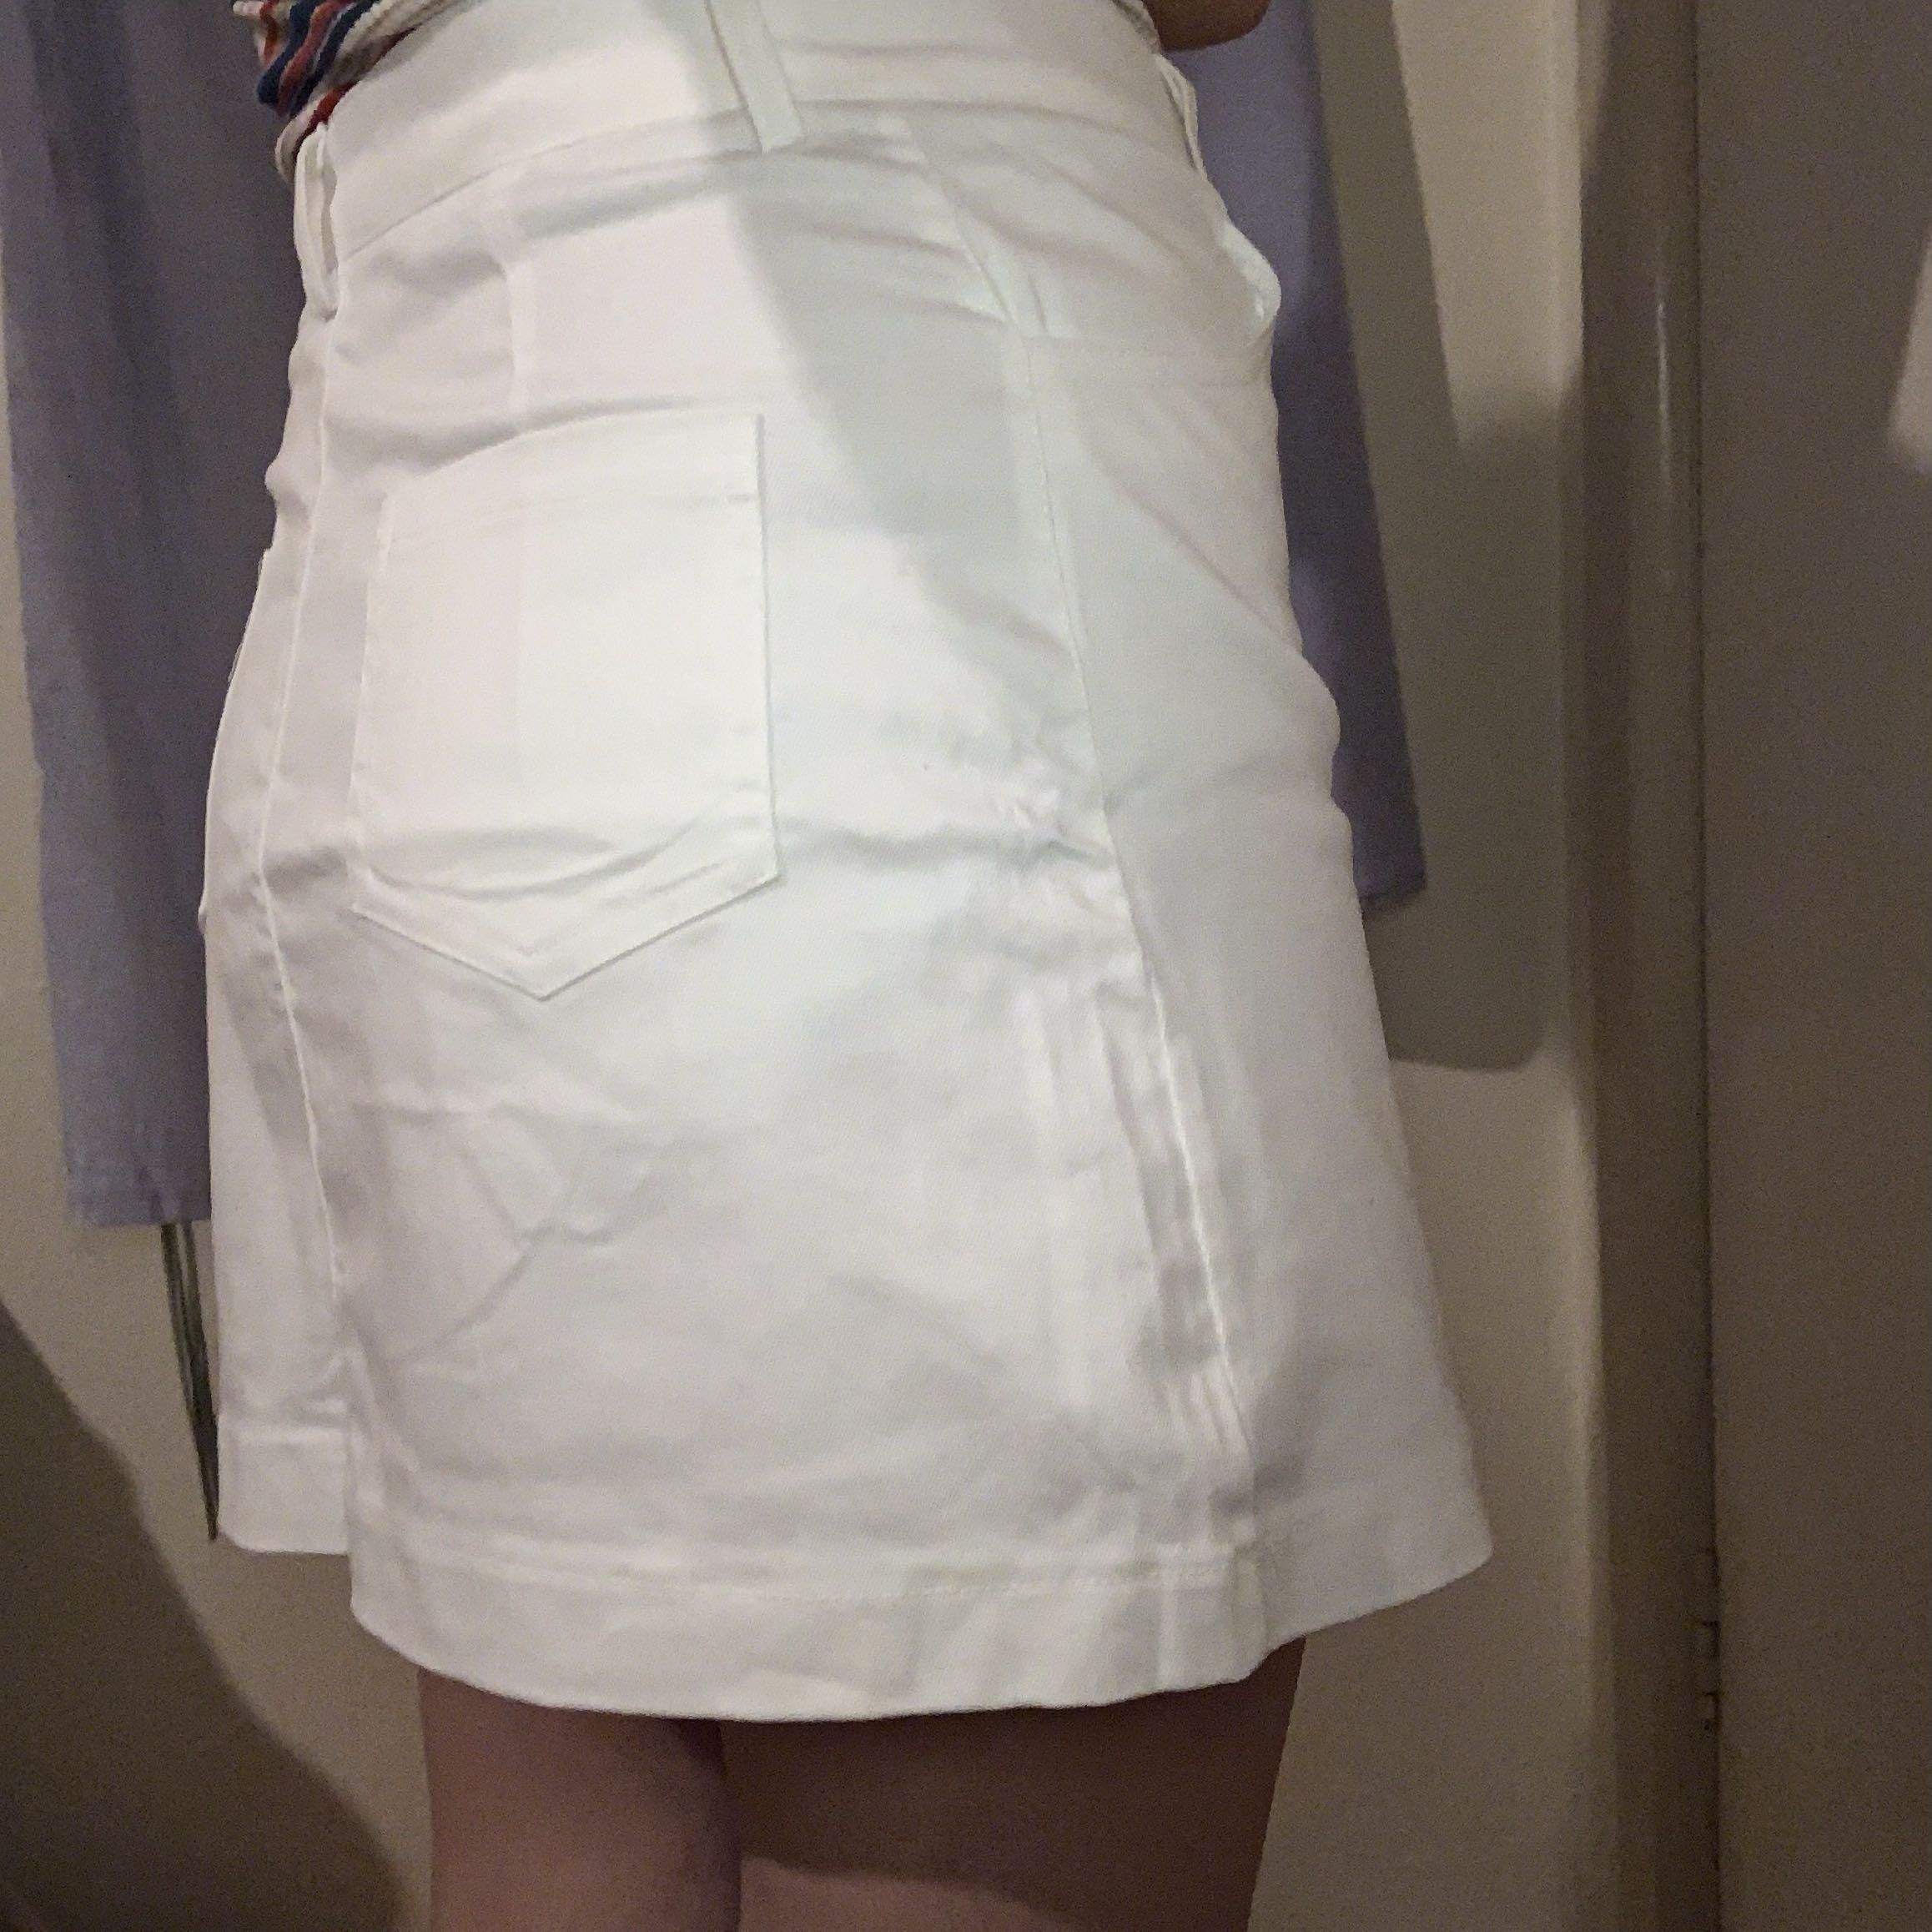 a-lime embroidered white skirt